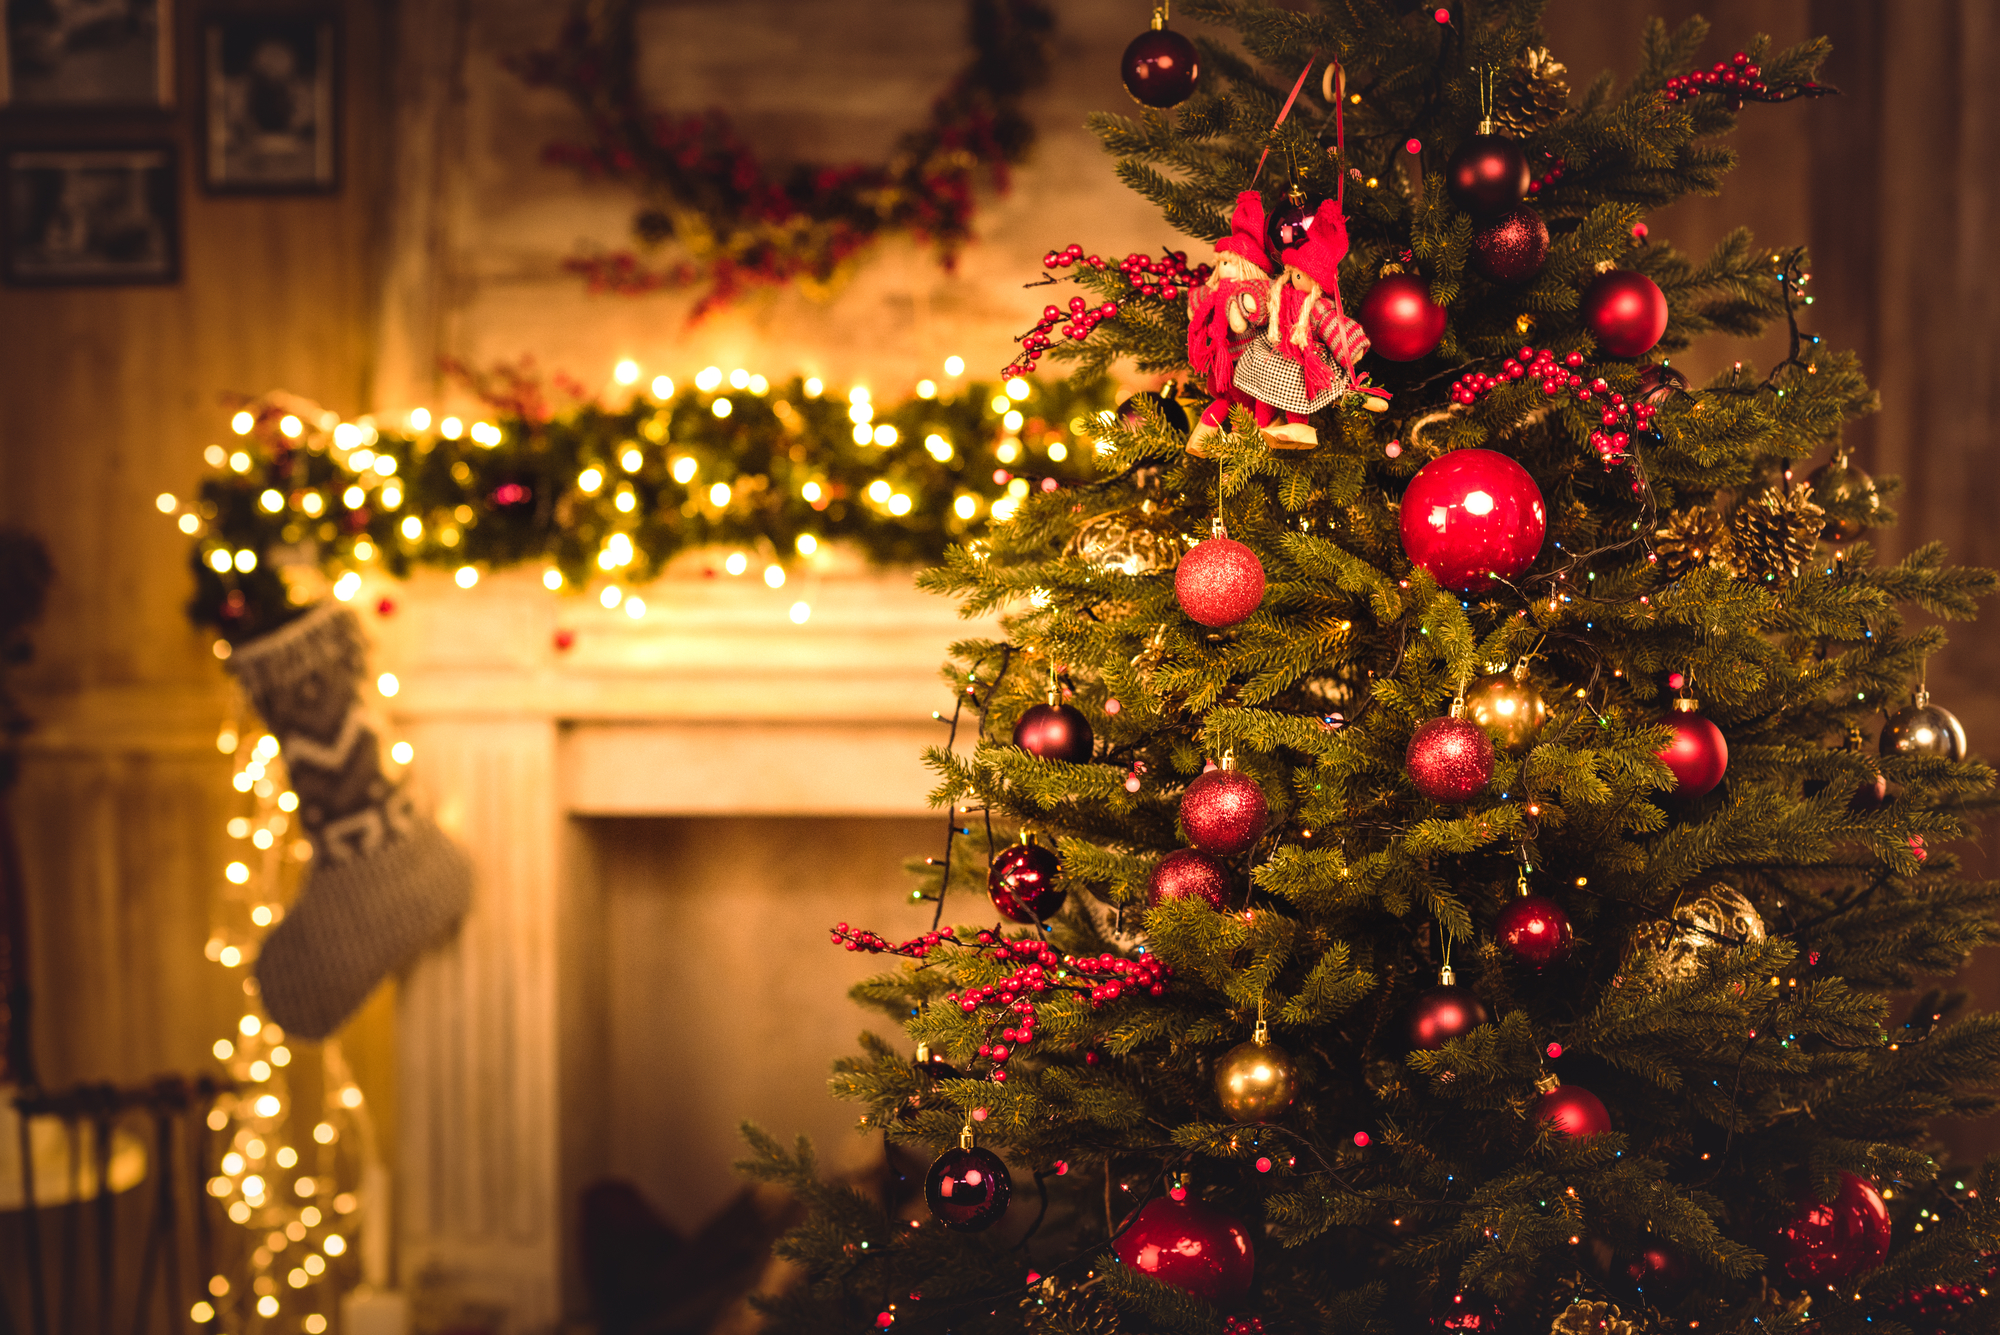 Christmas tree in your serviced apartments